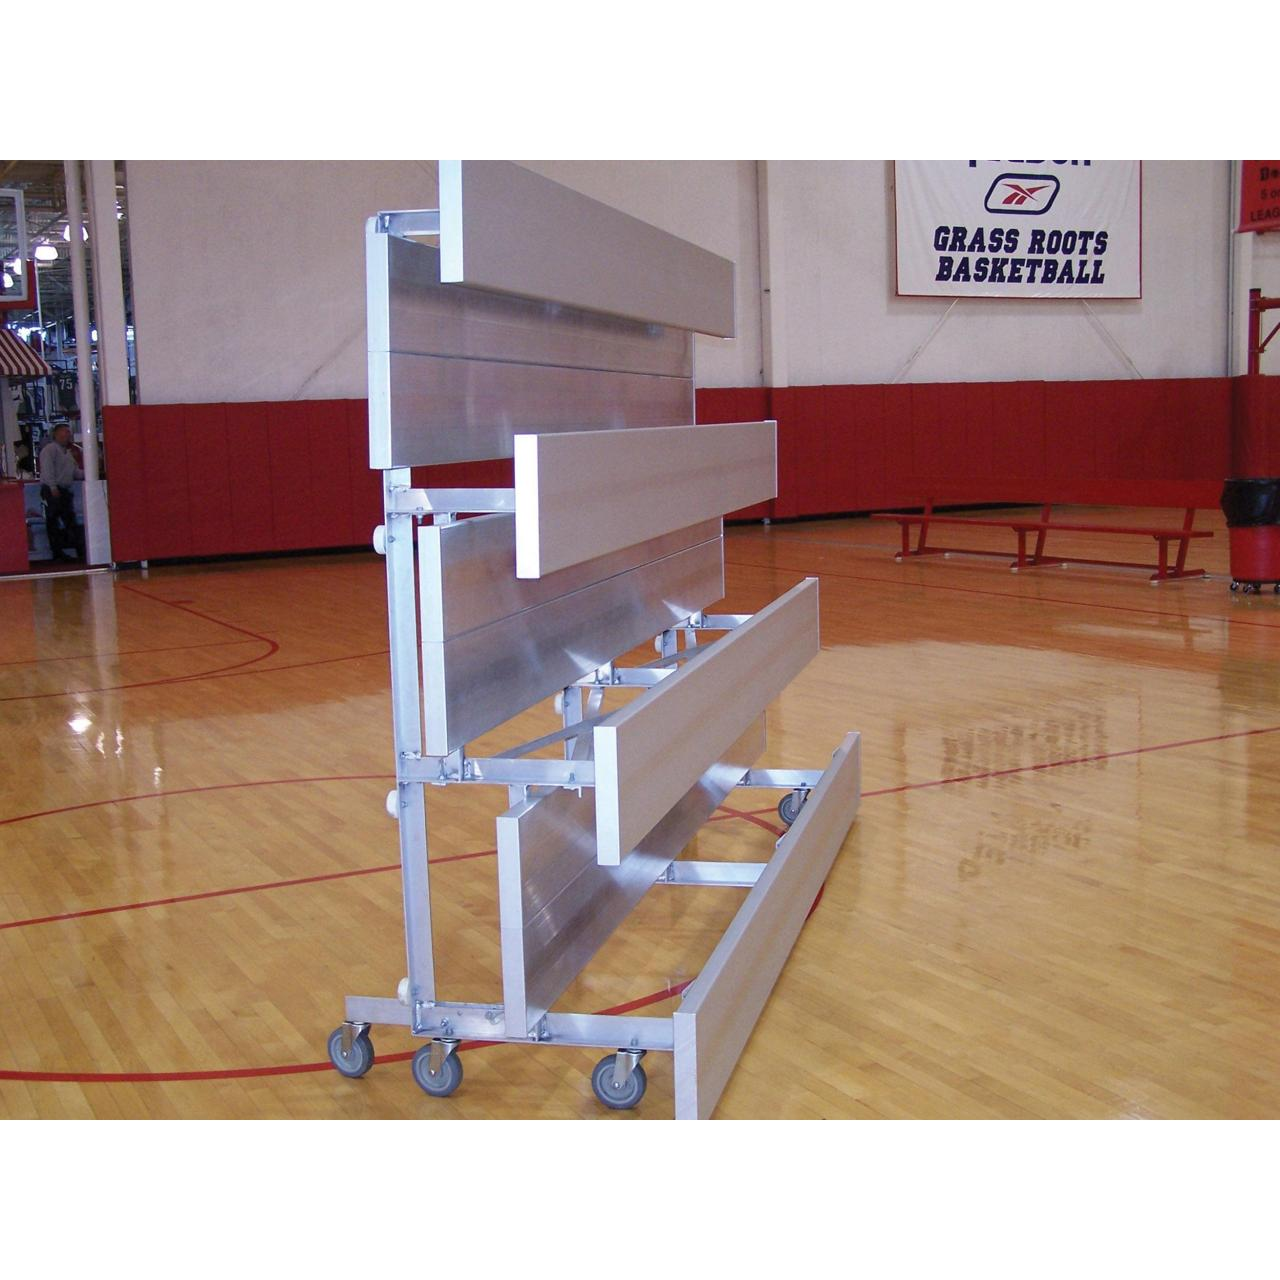 Buy cheap Baseball-Softball Tip-N-Roll Bleachers 3 Row 15' Tip-N-Roll Bleacher from wholesalers